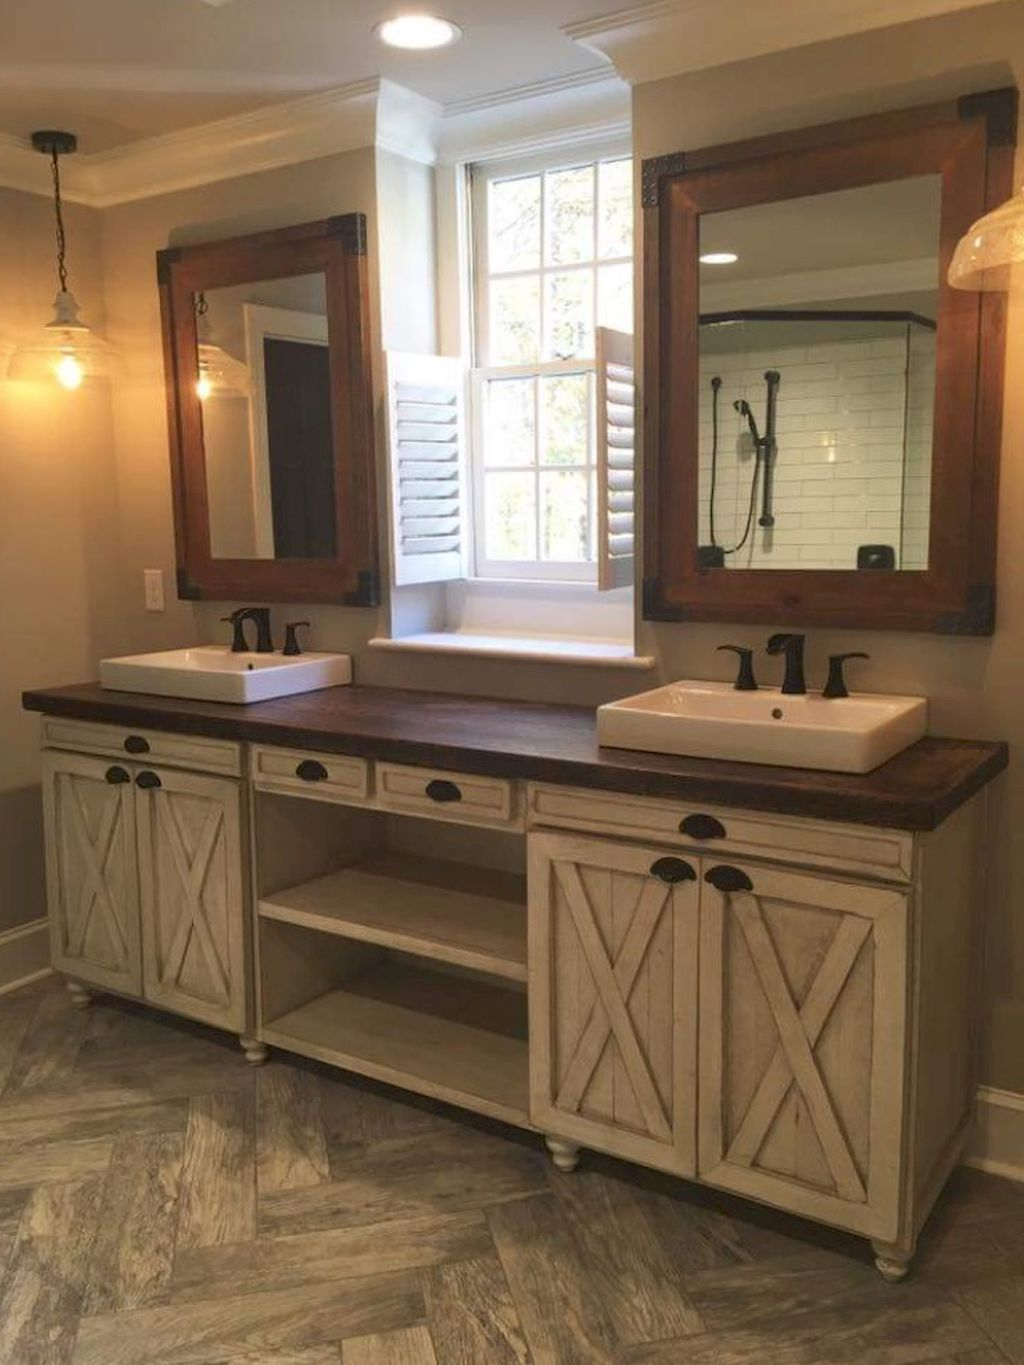 Rustic Bathroom Remodel 50 Rustic Farmhouse Master Bathroom Remodel Ideas 4 In